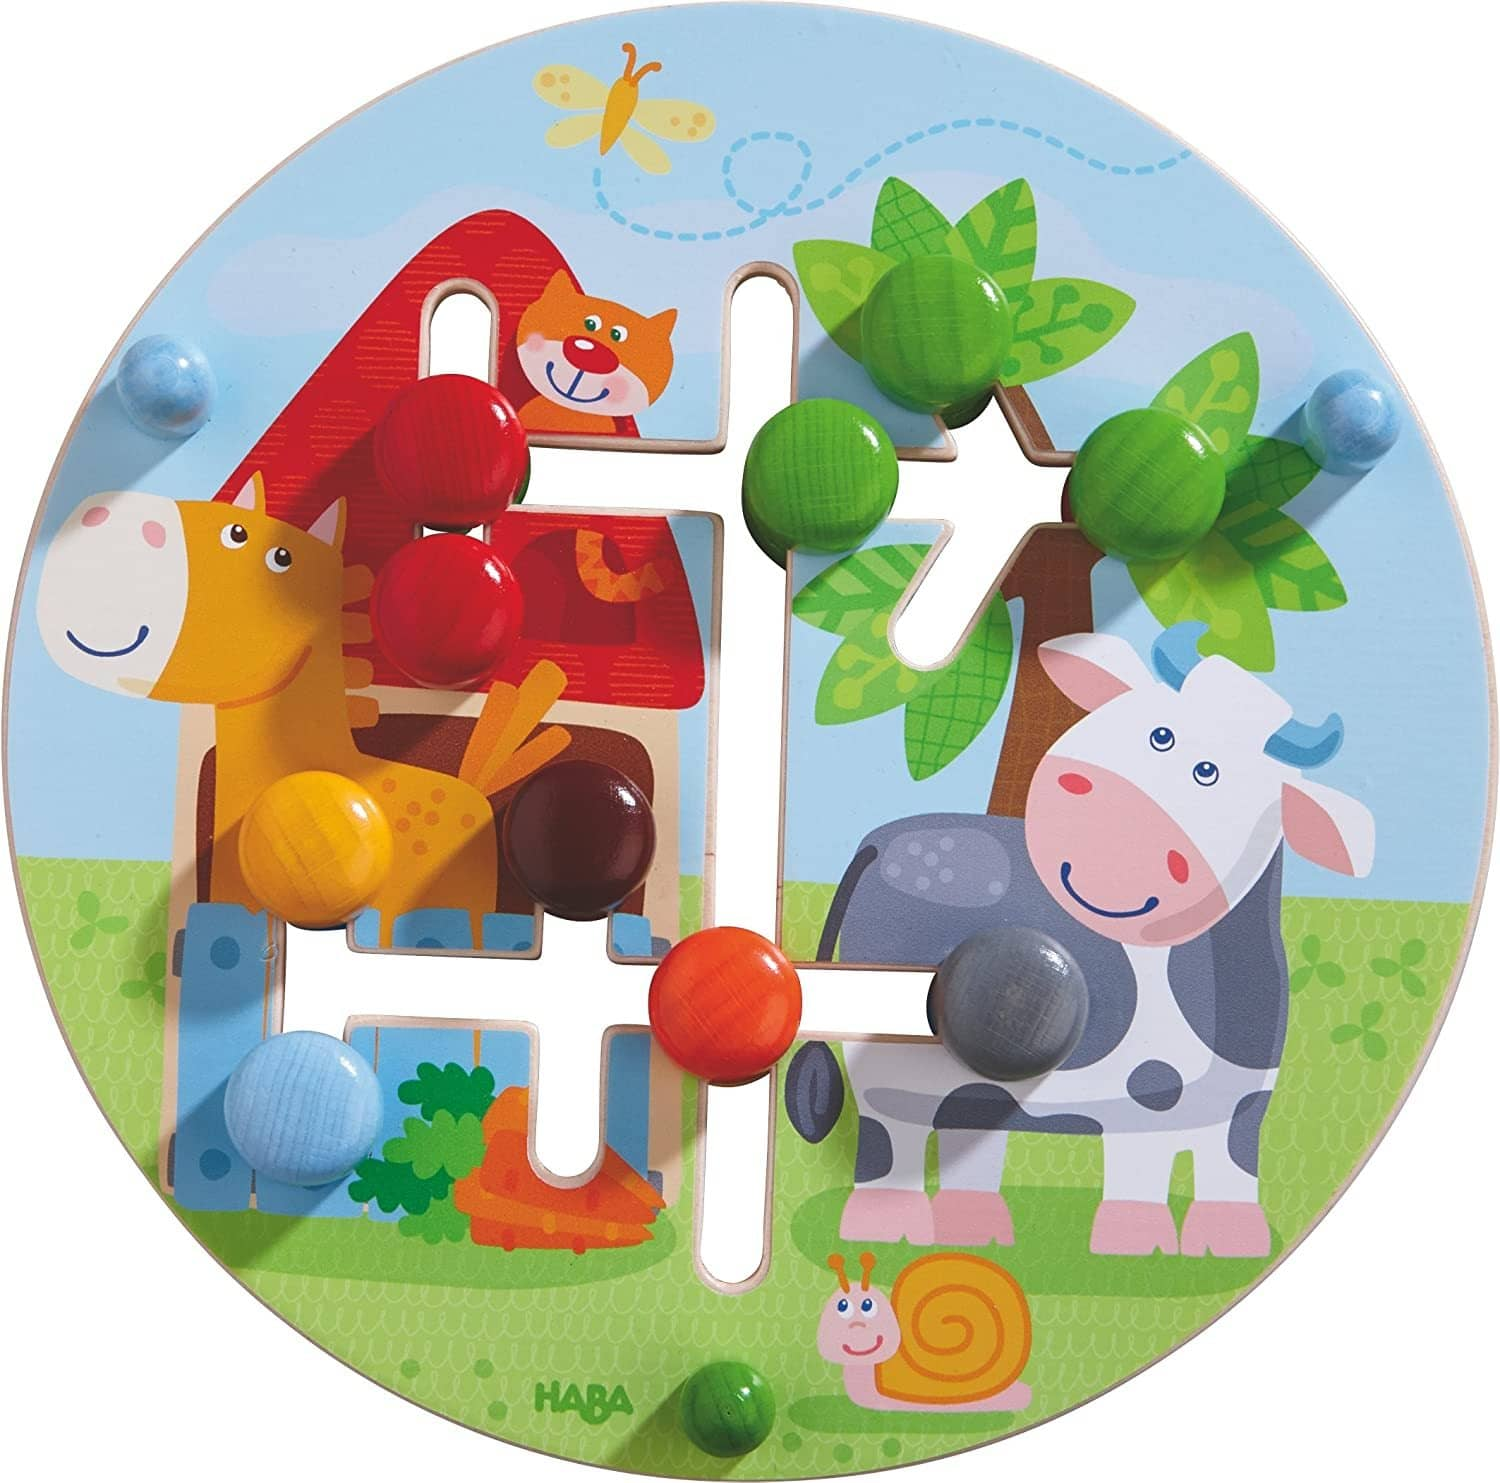 Motor Skills Board On The Farm - Double Sided Wooden Color And Shape Recognition Fun Ages 1 +-Kidding Around NYC